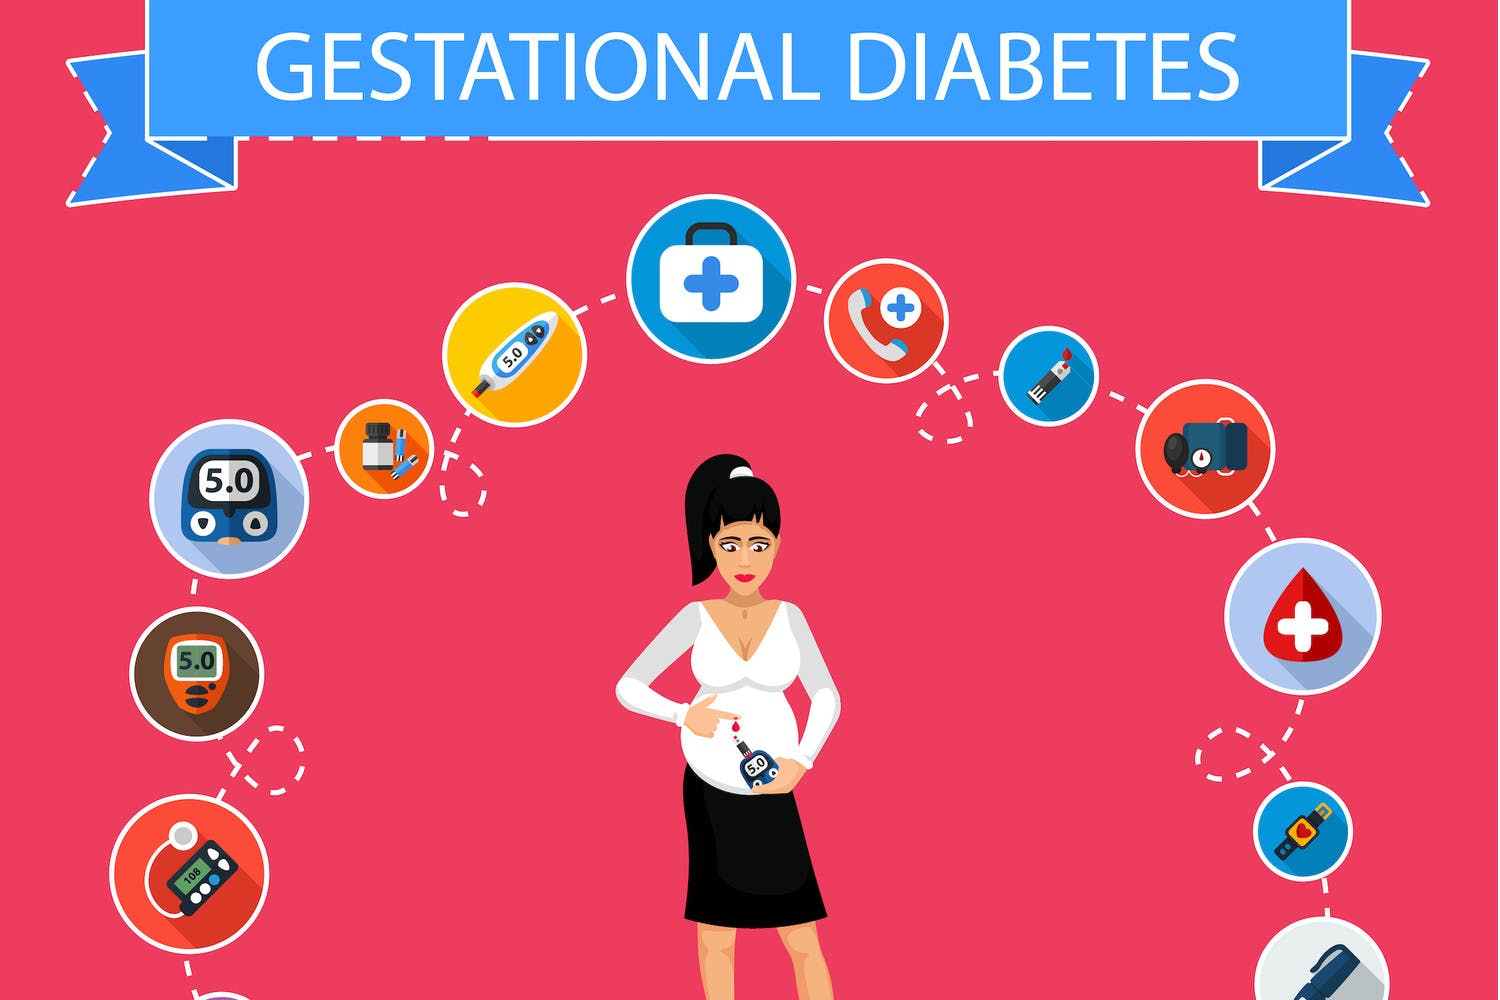 Important things to know about Gestational diabetes